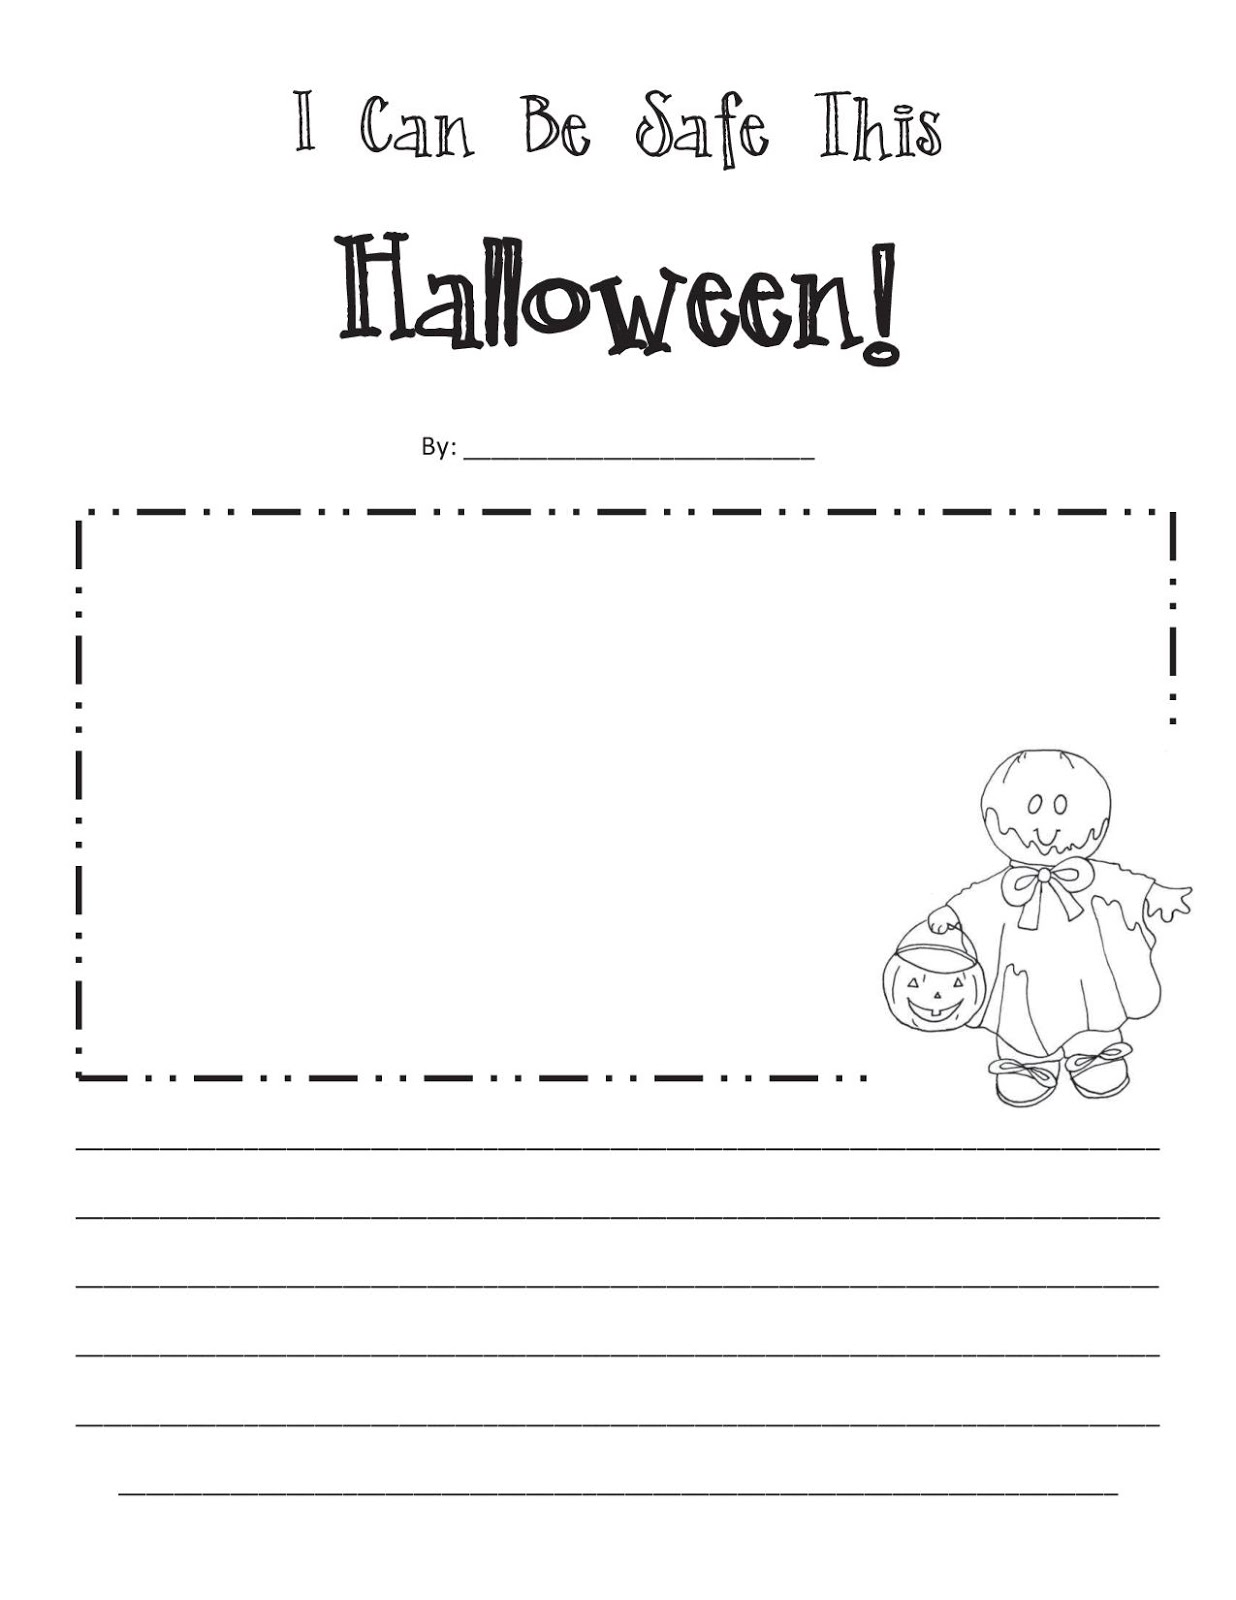 living our dream life halloween safety fhe lesson - Halloween Safety Printables